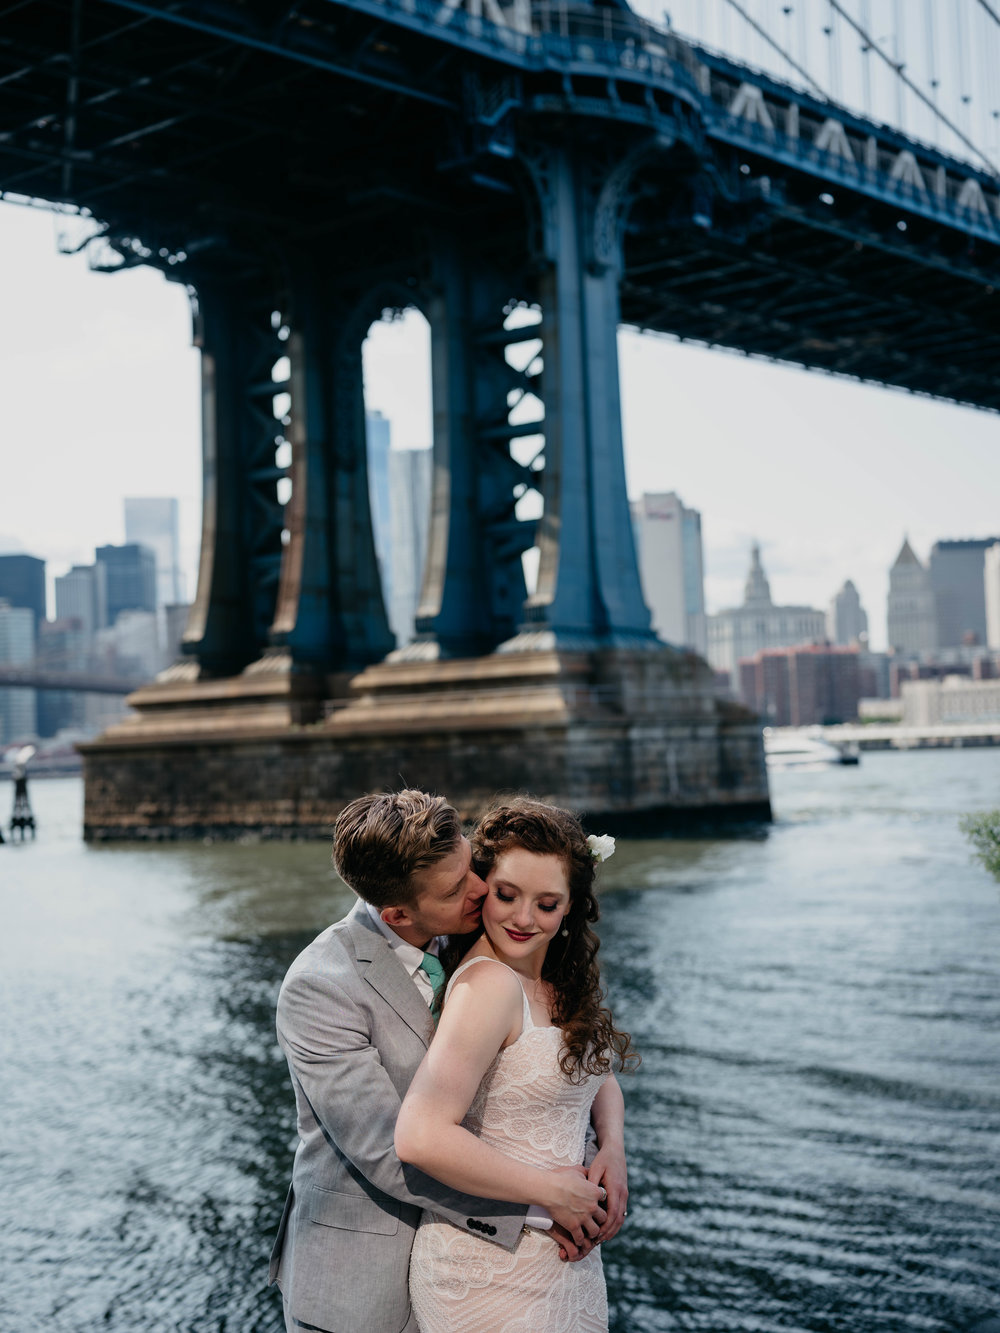 WSPCo-09102017-Alex-Kiley-Dumbo-Loft-Brooklyn-NY-Wedding-Preview-73.jpg